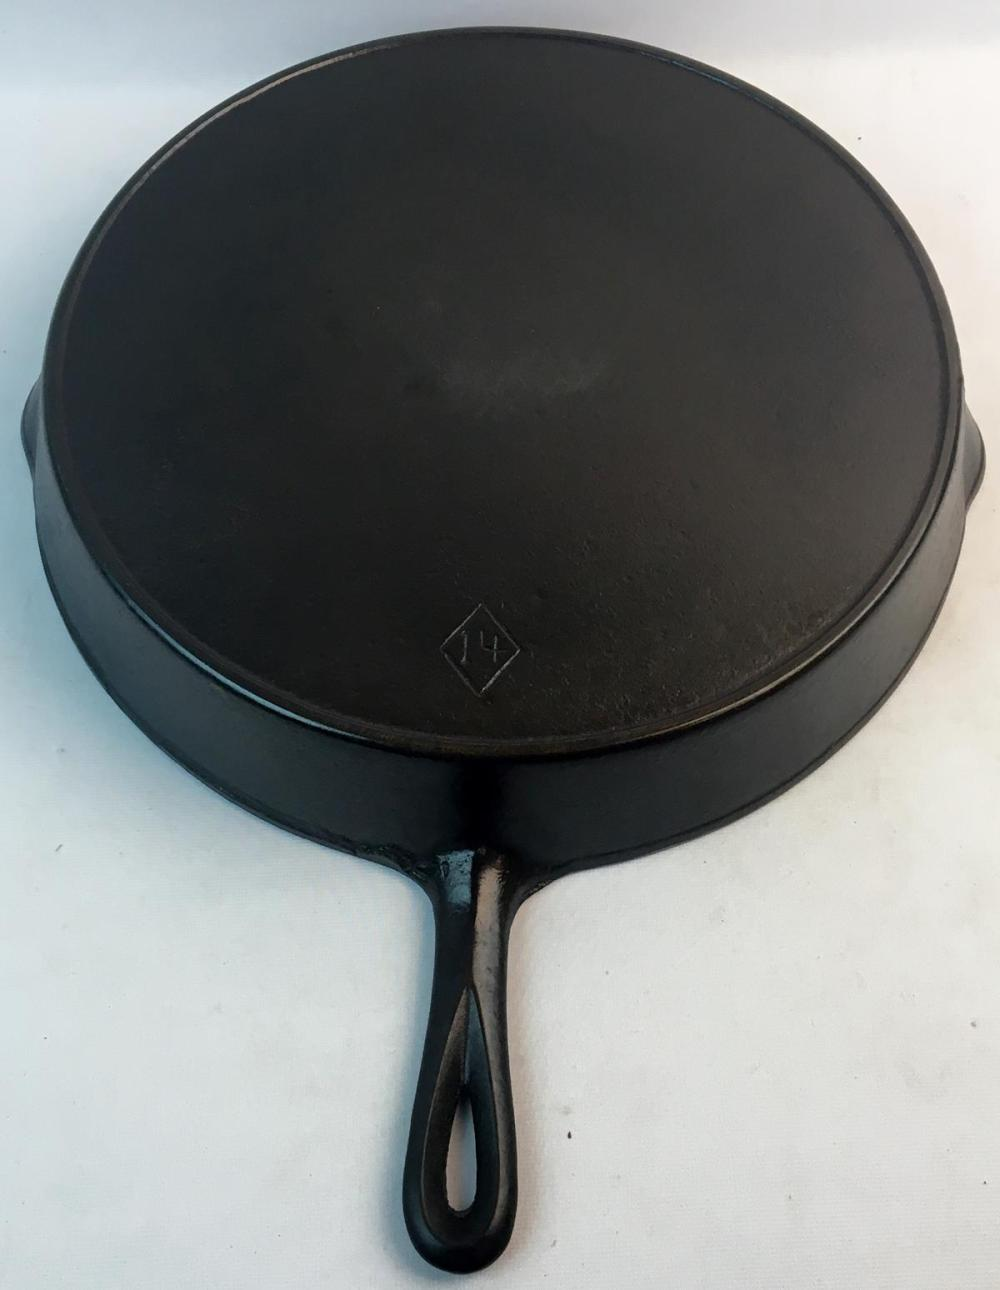 RARE Antique c. 1920 Favorite Chicago Hardware and Foundry Diamond No. 14 Skillet